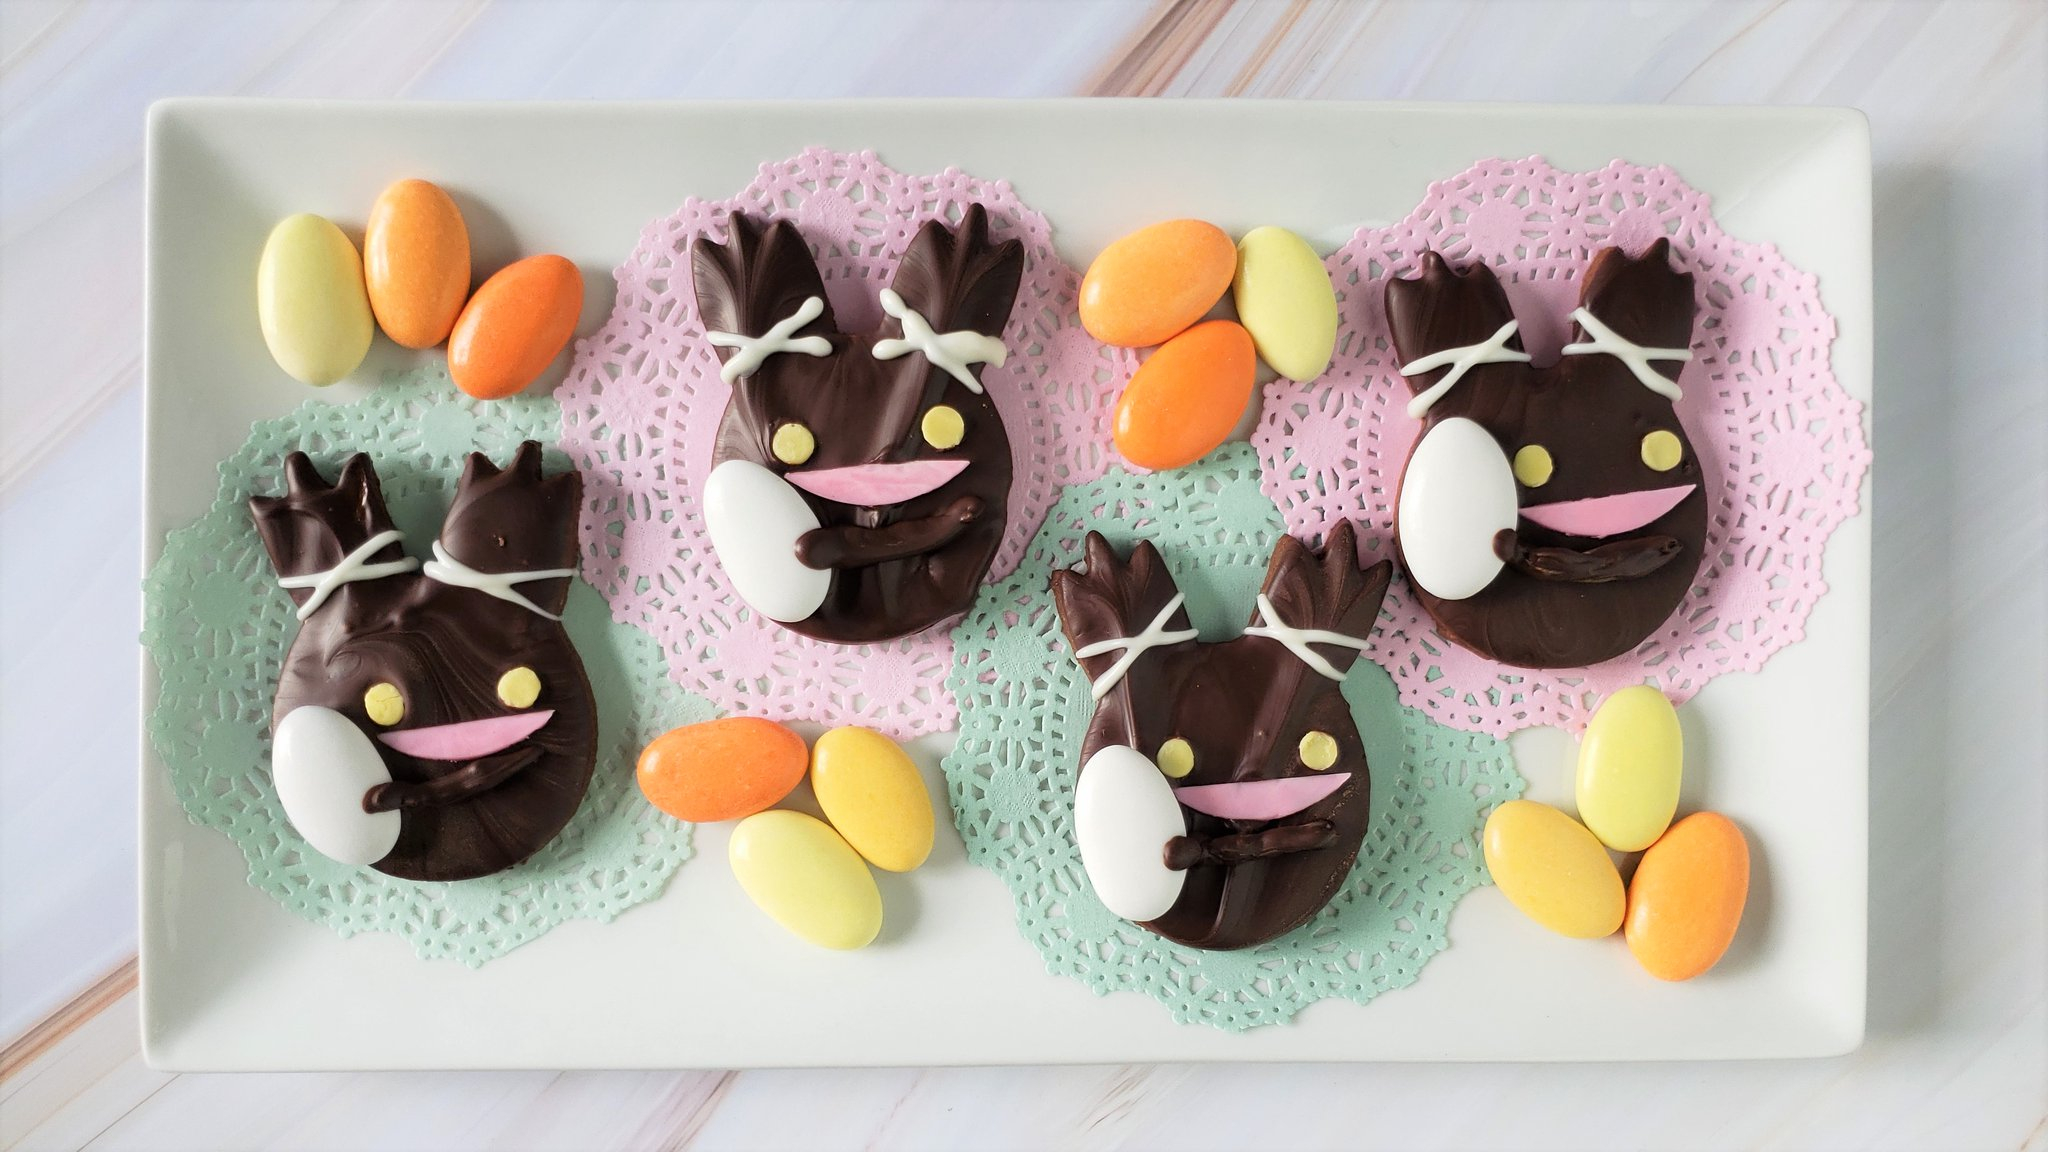 Celebrate Easter Final Fantasy XIV Style With These Adorable Spriggan Cookies